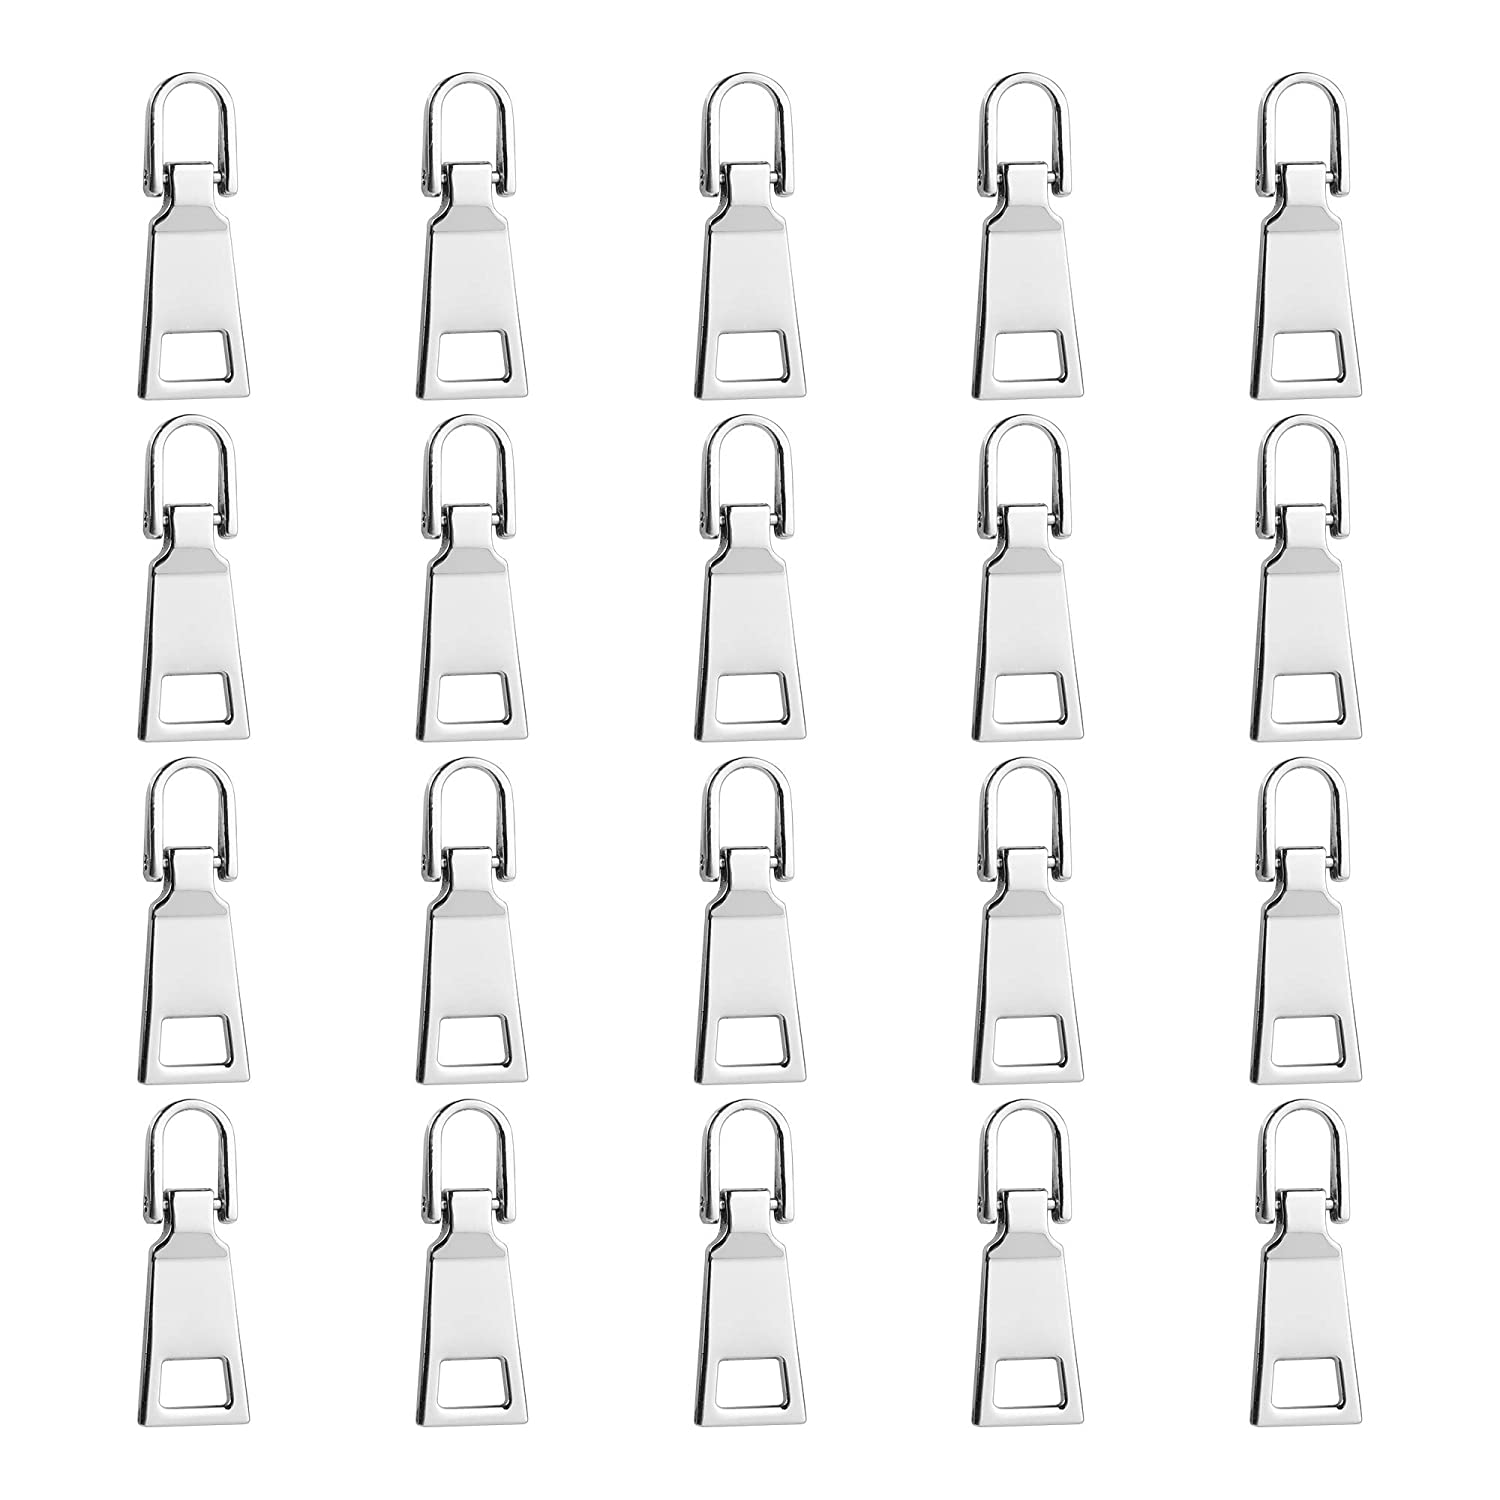 Tugaizi 20 Pieces Zipper Head Special Zipper Pull Card Detachable Pull Tab Zipper Pull Tabs Replacement Heavy Duty Zip Fixer #5 silvery